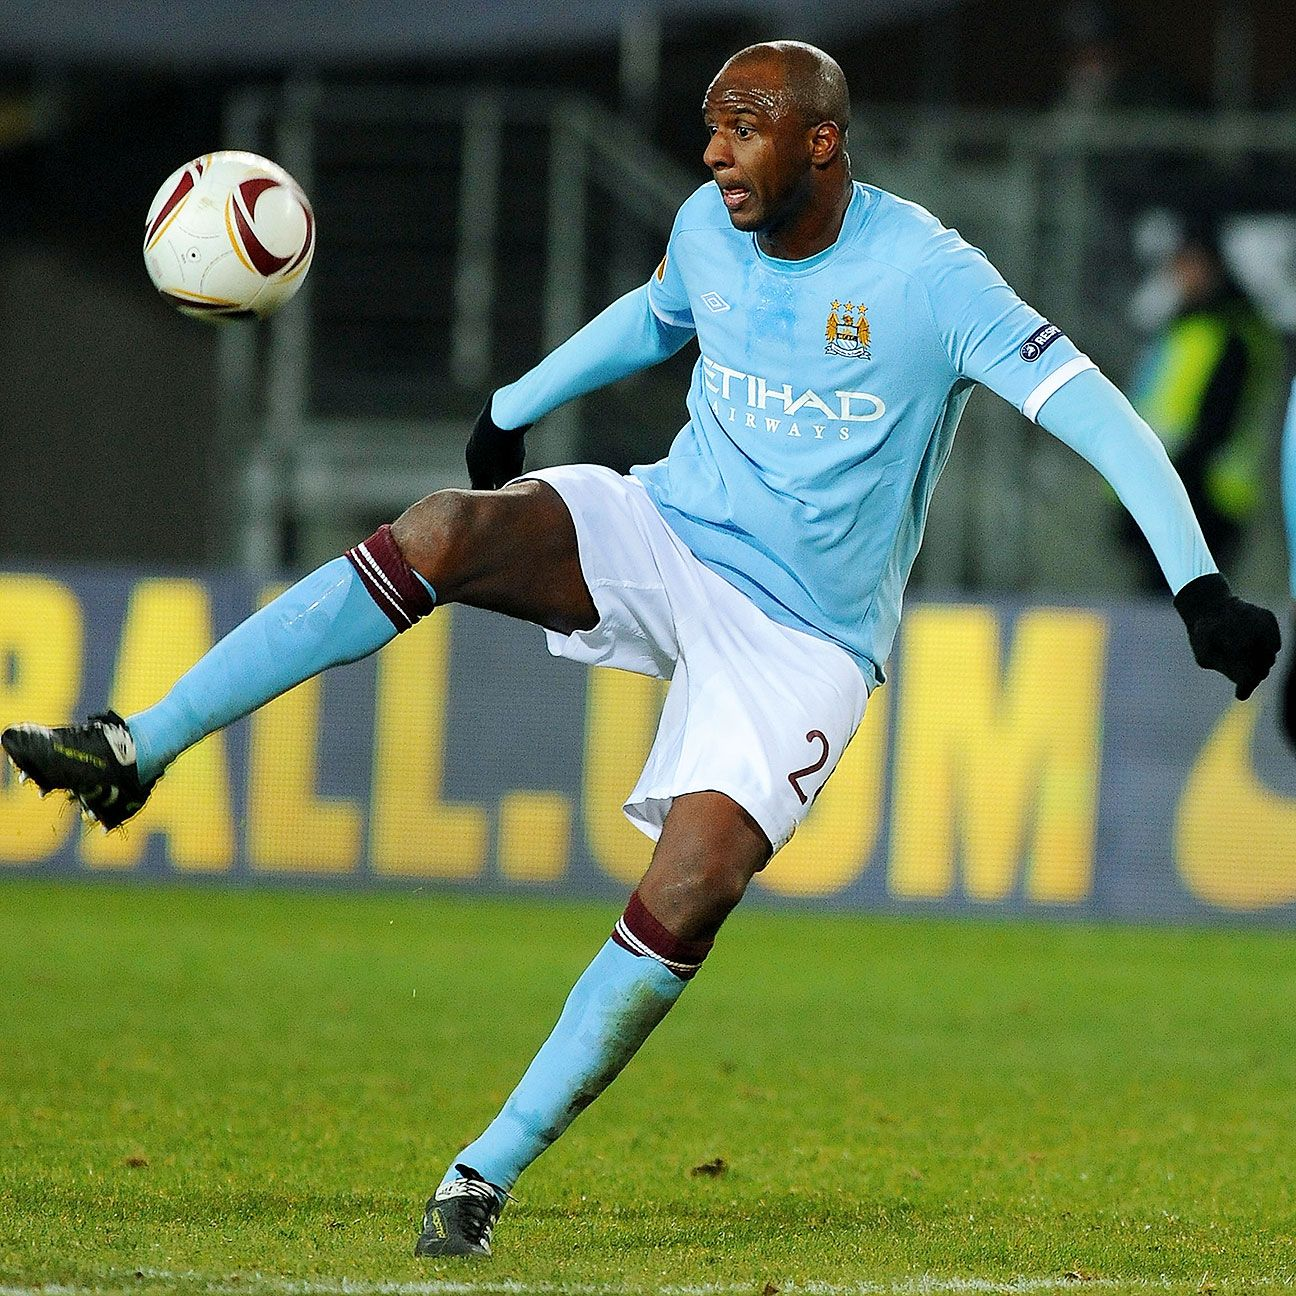 Patrick Vieira's poise and leadership helped guide Manchester City to the 2011 FA Cup title.